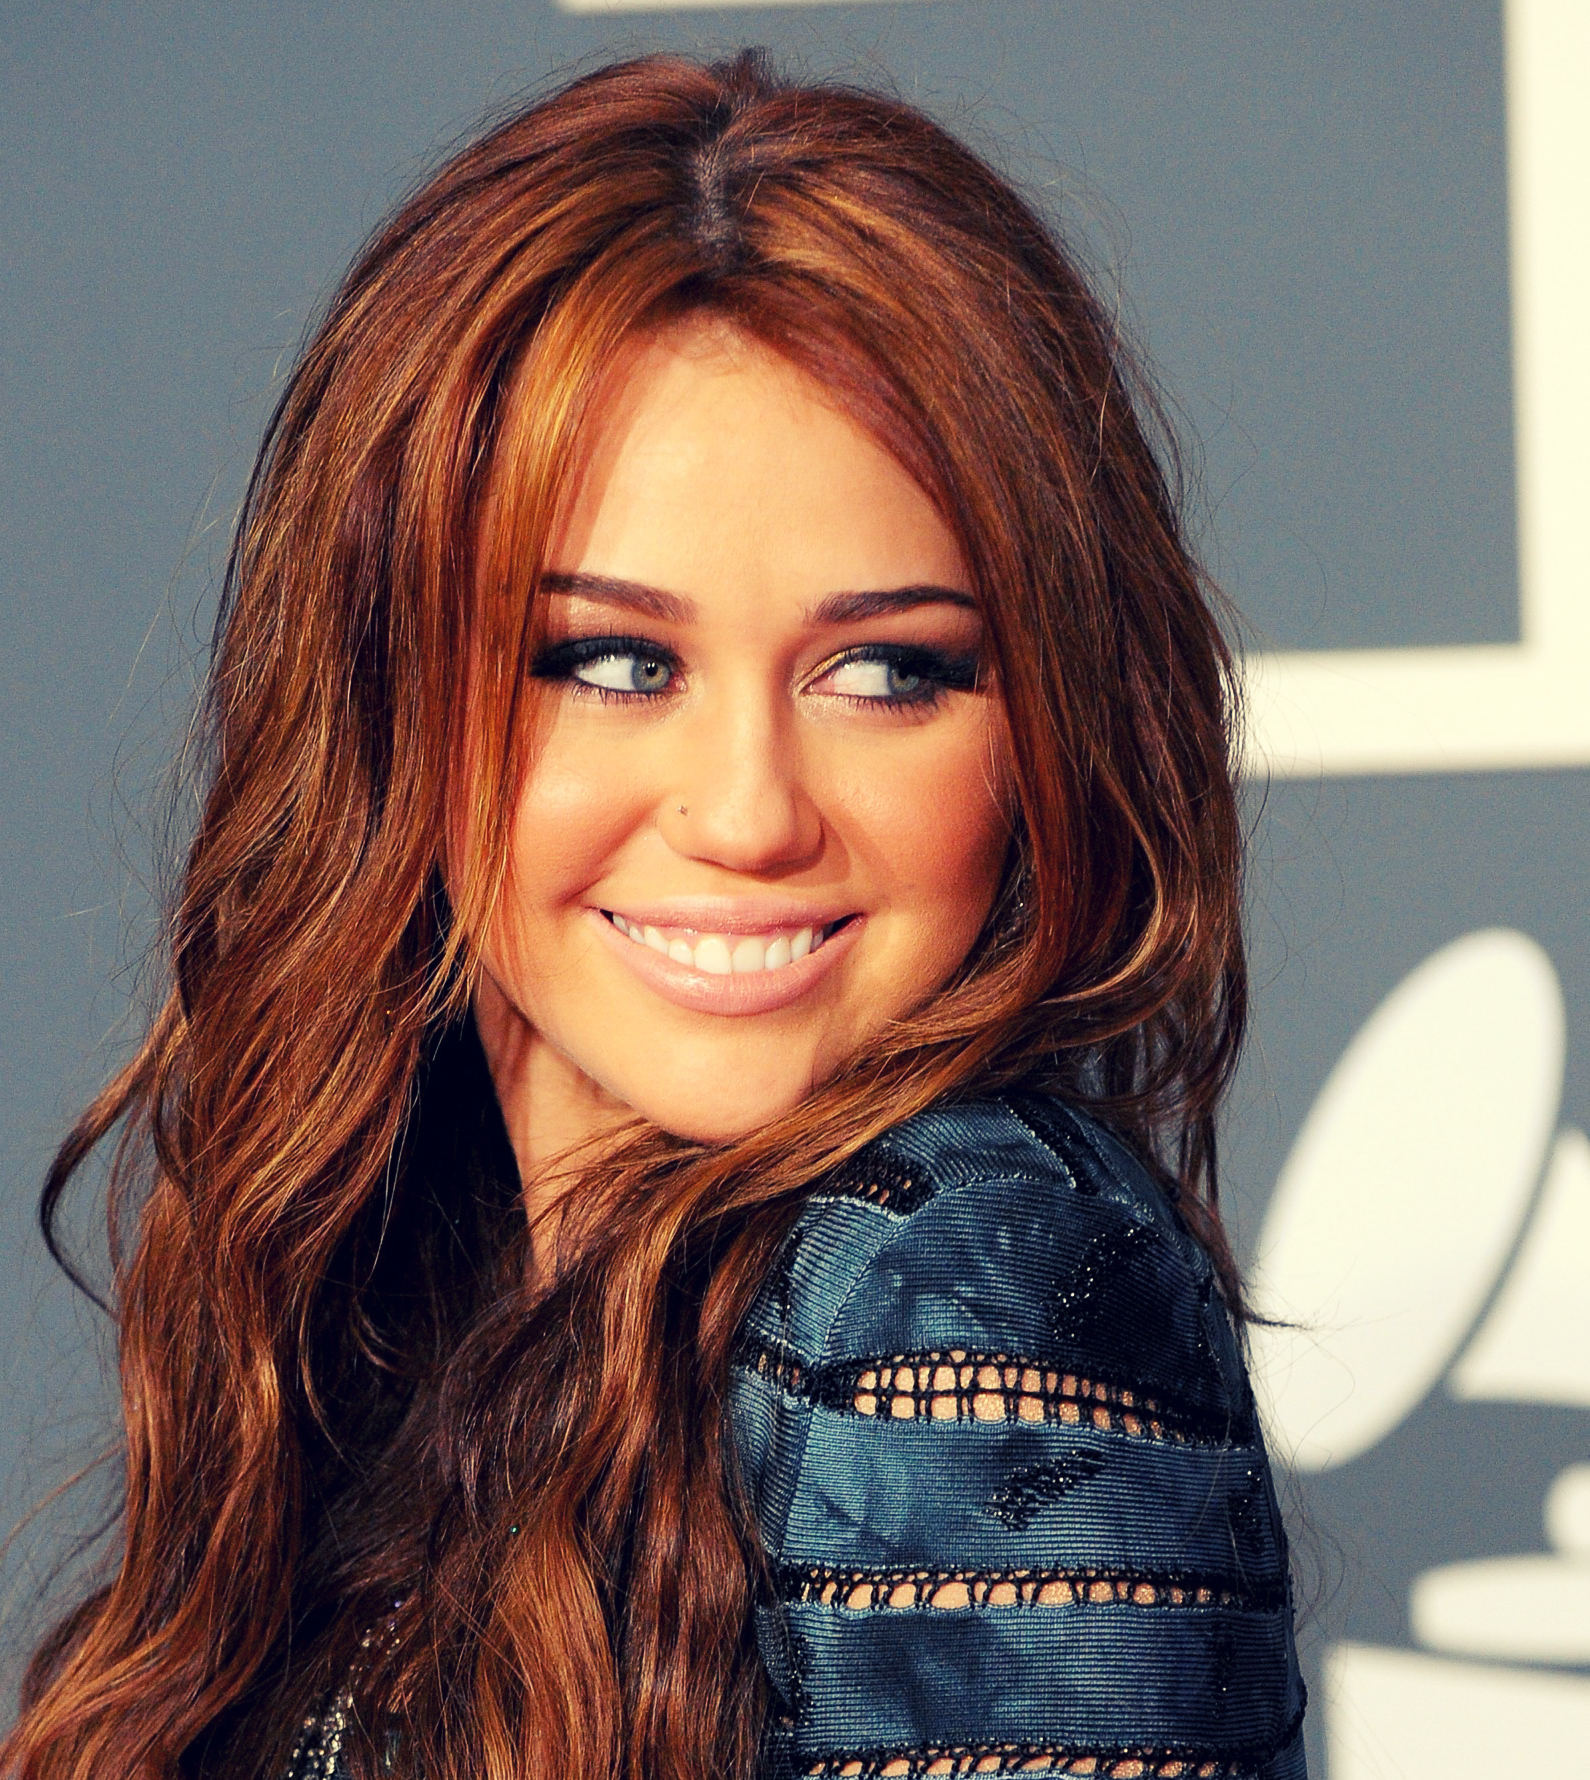 Miley Cyrus Who Owns my Heart Tumblr Miley Owns my Heart